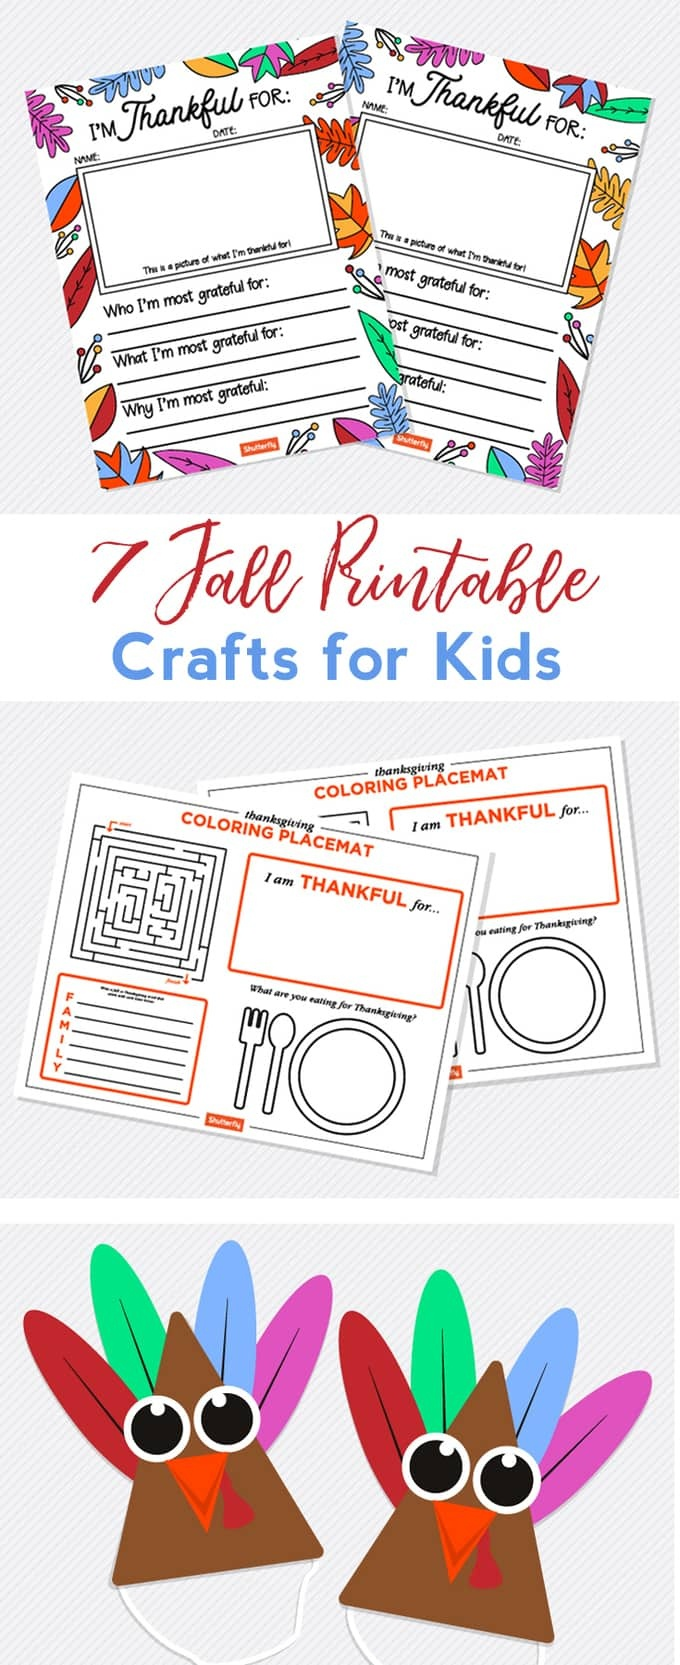 Fall Crafts For Kids With Free Printables - Free Printable Fall Crafts For Kids